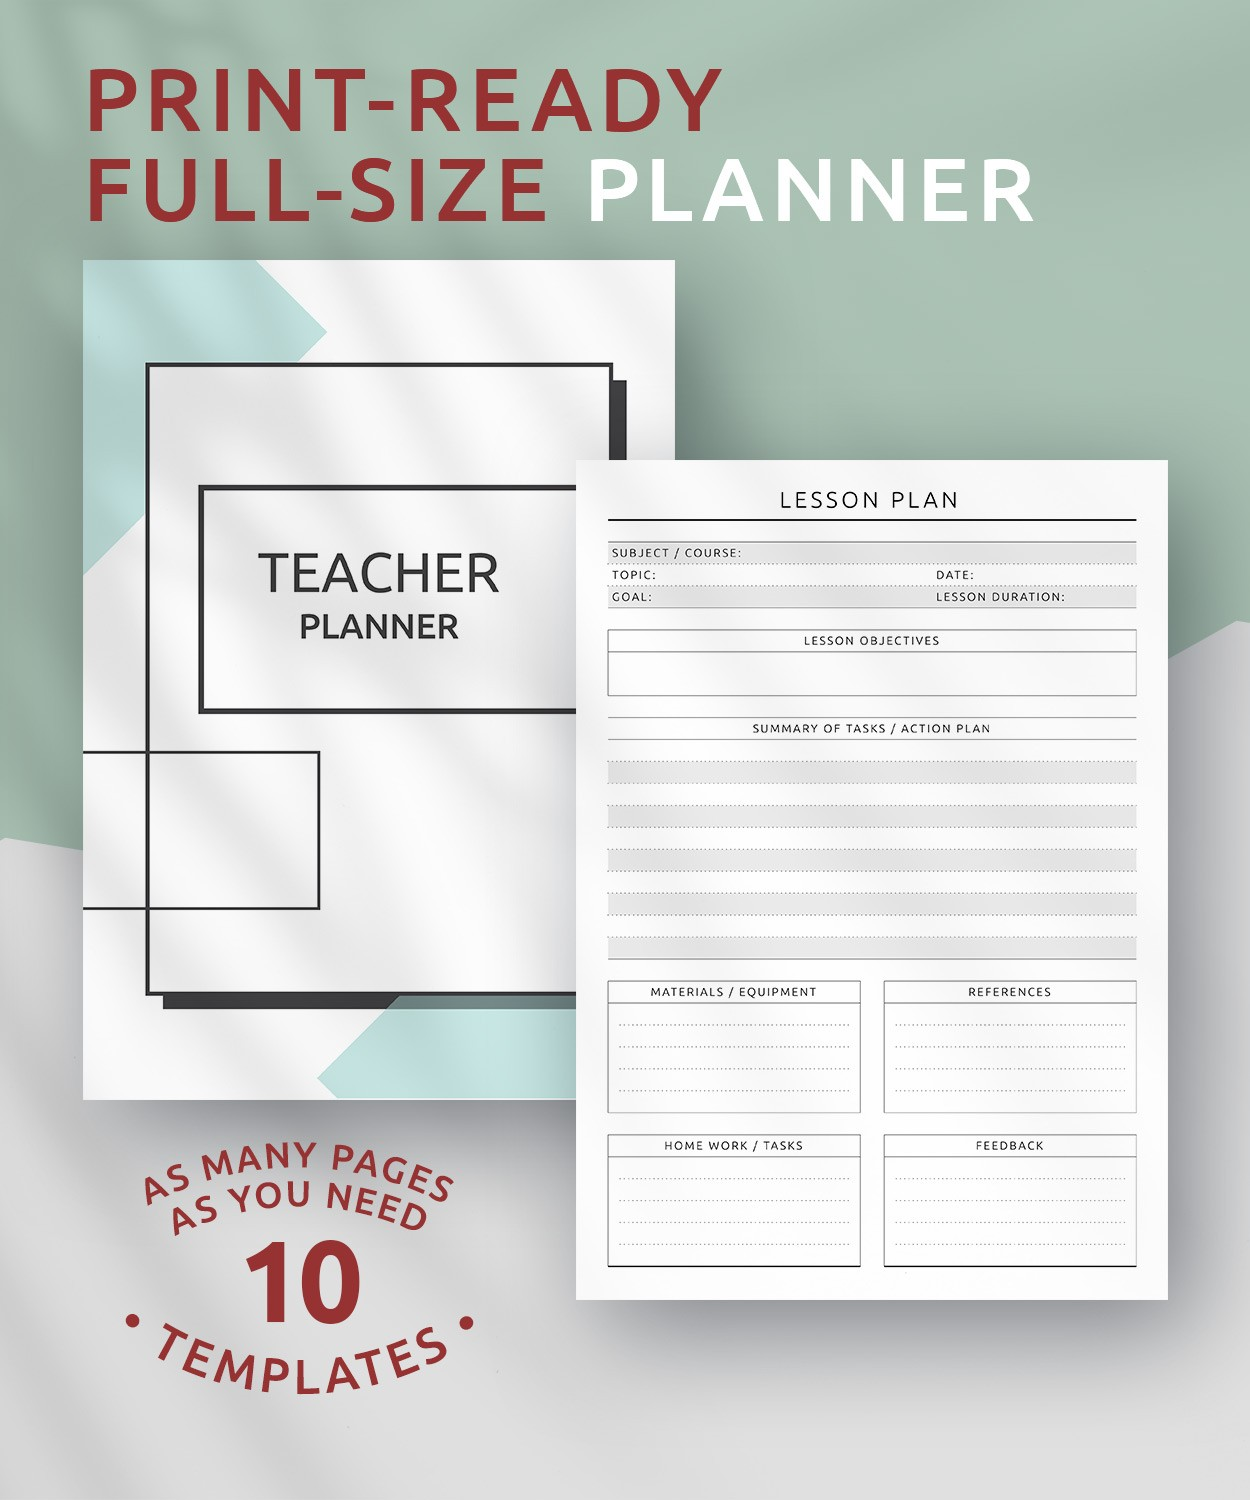 photograph relating to Free Printable Teacher Planner titled Free of charge Printable Instructor Planner - Initial Structure PDF Down load